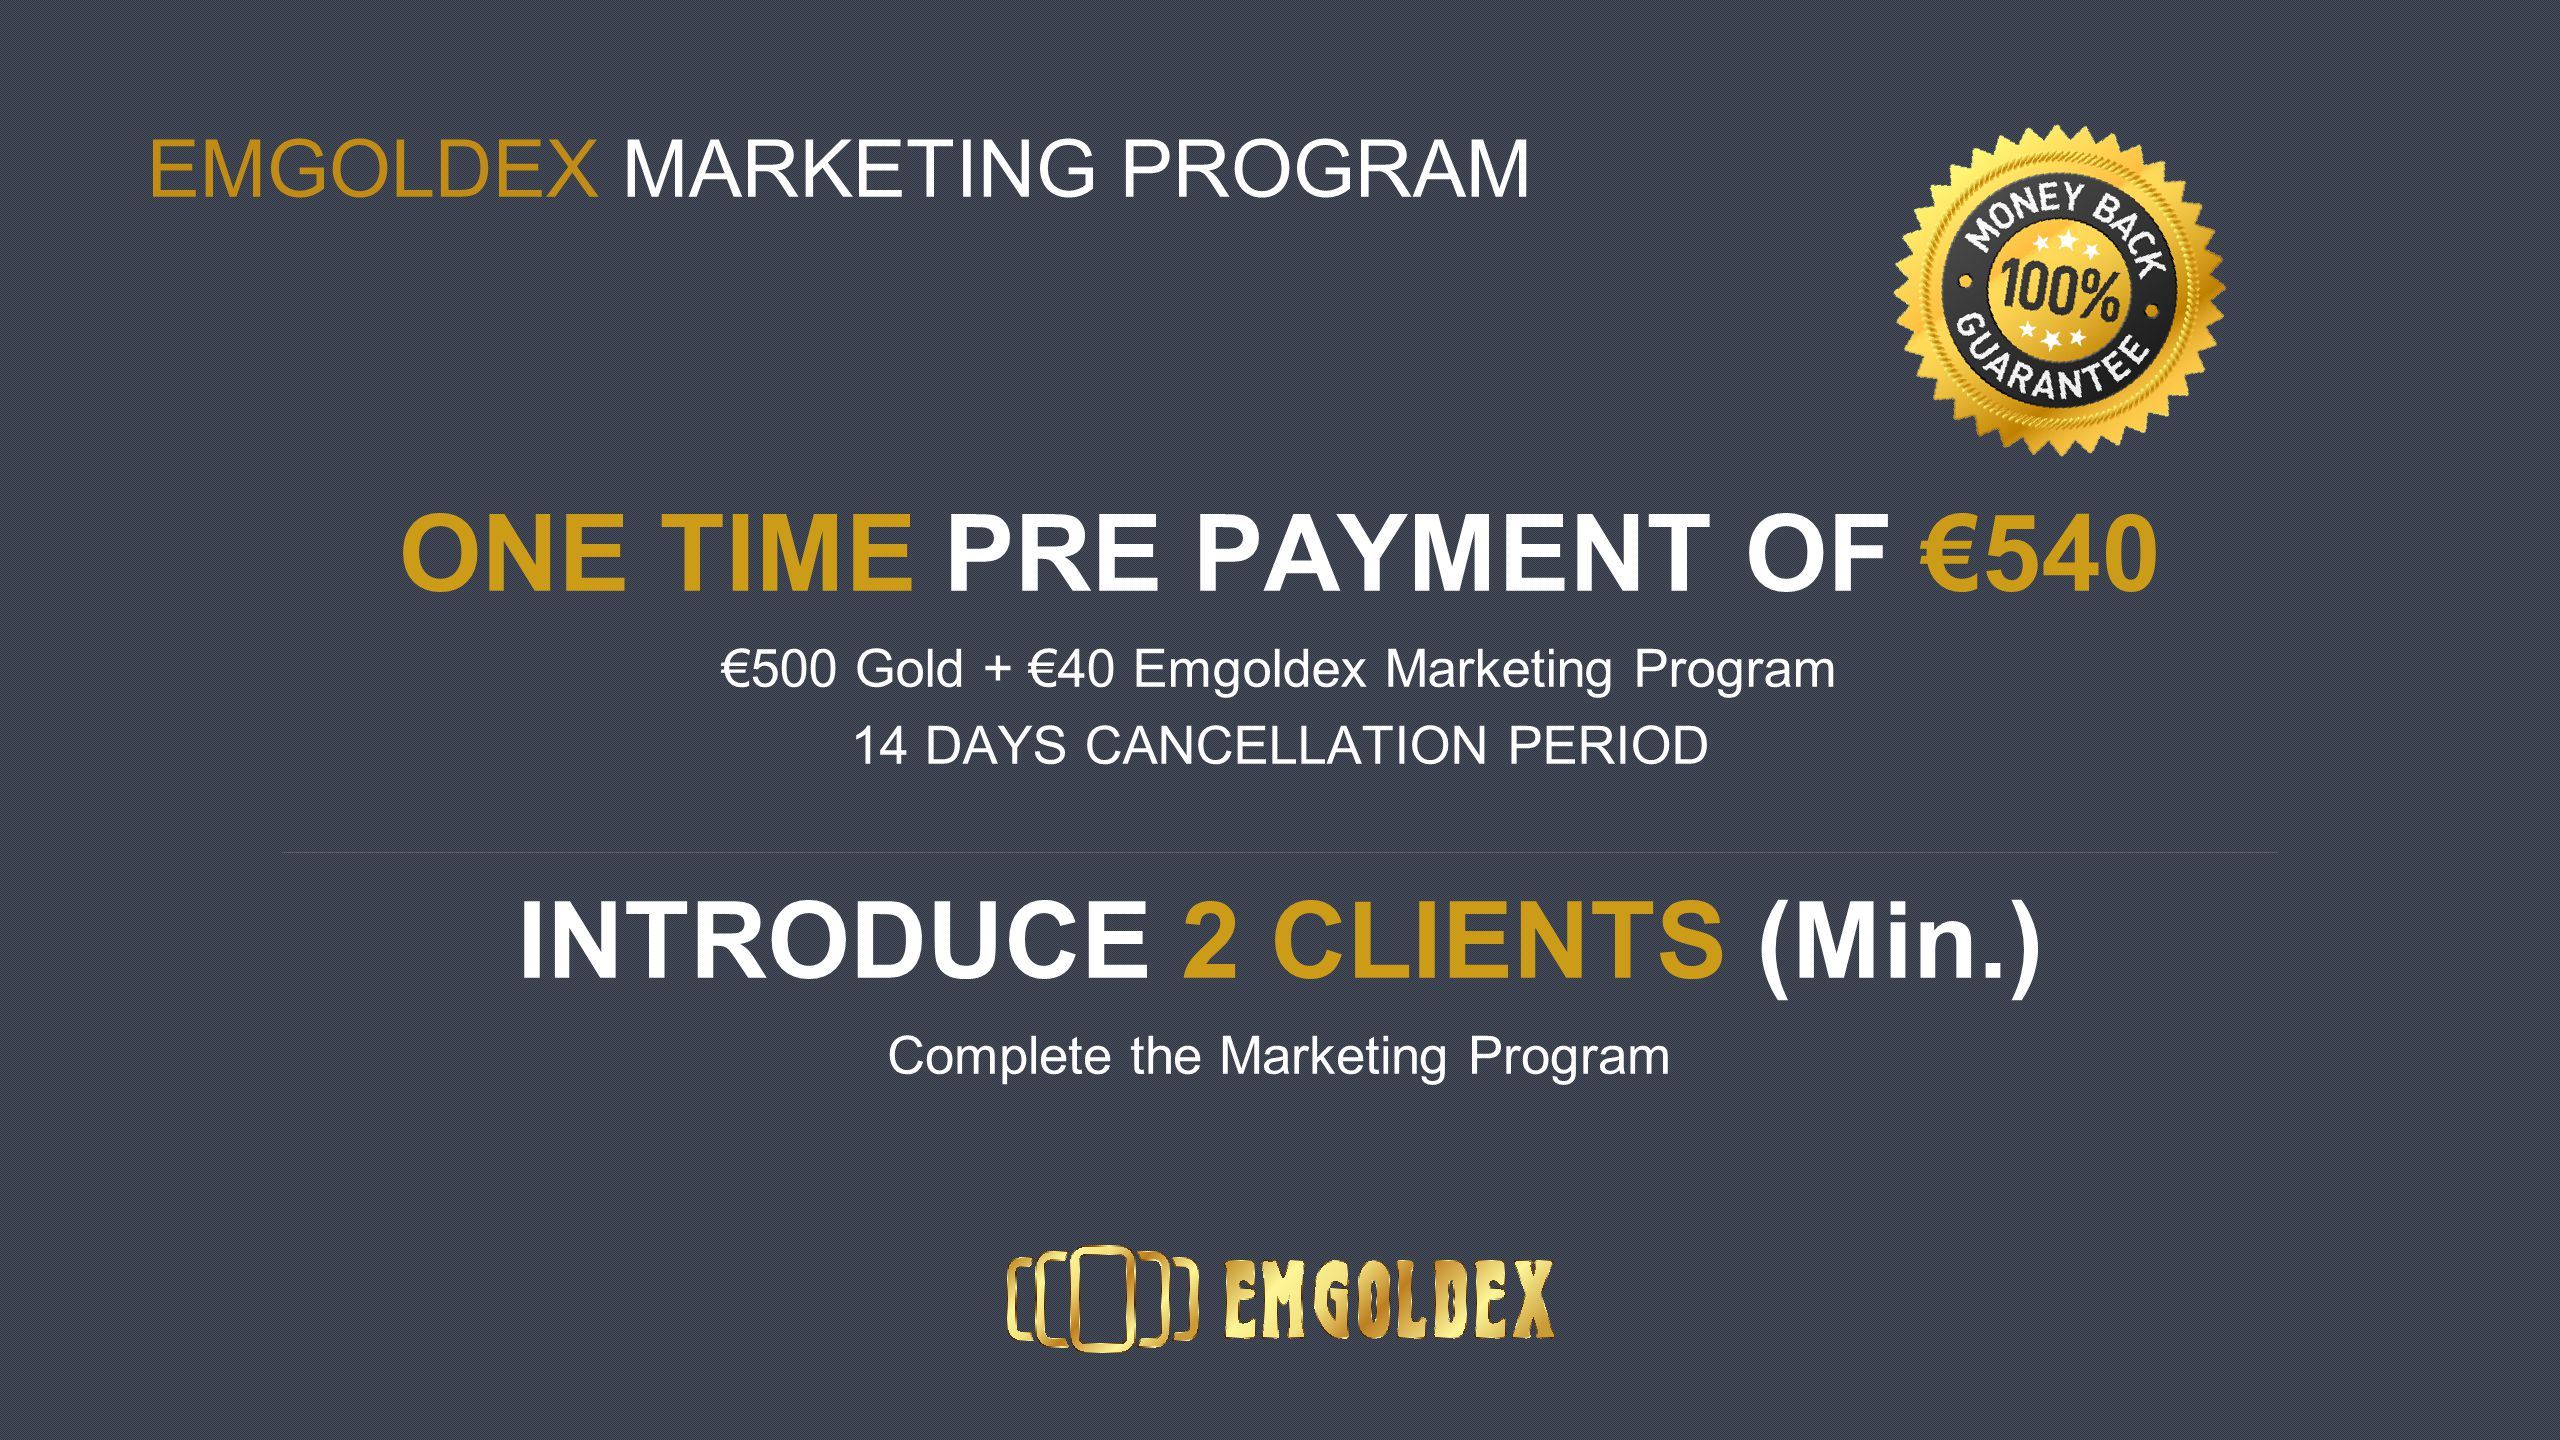 EMGOLDEX MARKETING PROGRAM ONE TIME PRE PAYMENT OF €540 €500 Gold + €40 Emgoldex Marketing Program 14 DAYS CANCELLATION PERIOD INTRODUCE 2 CLIENTS (Min.) Complete the Marketing Program